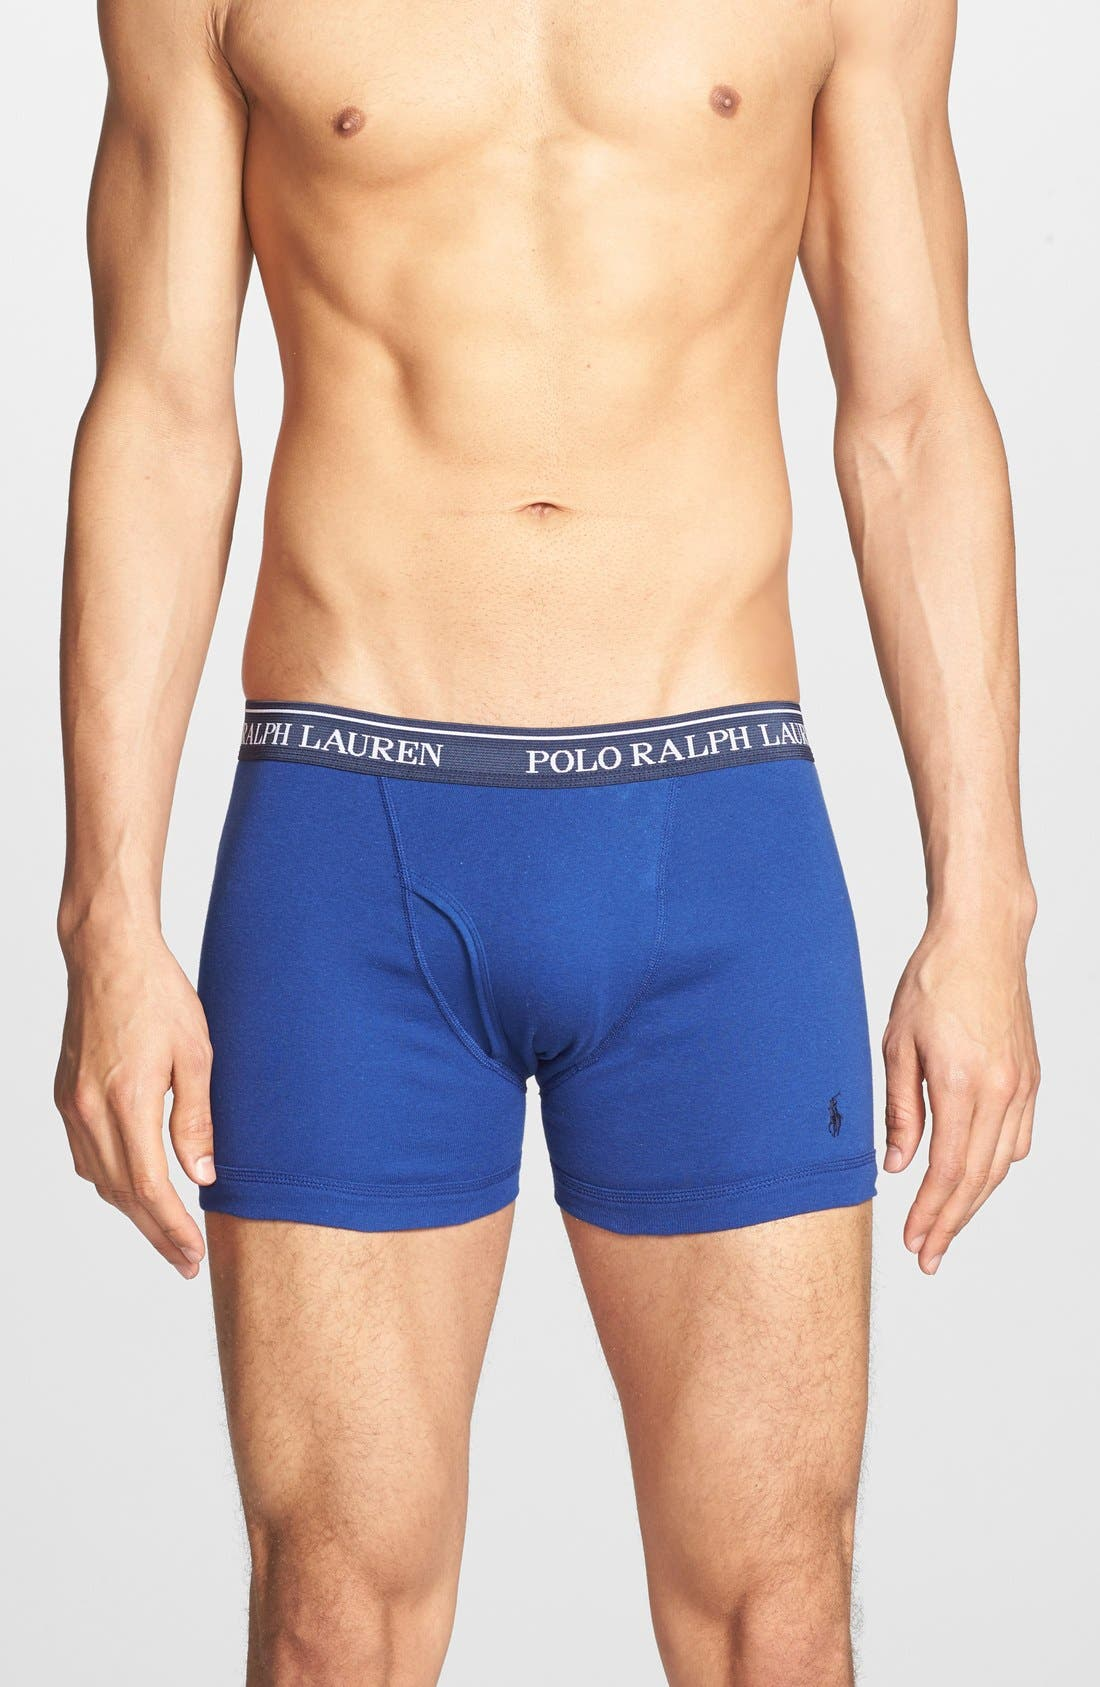 Polo Ralph Lauren Assorted 3-Pack Boxer Briefs